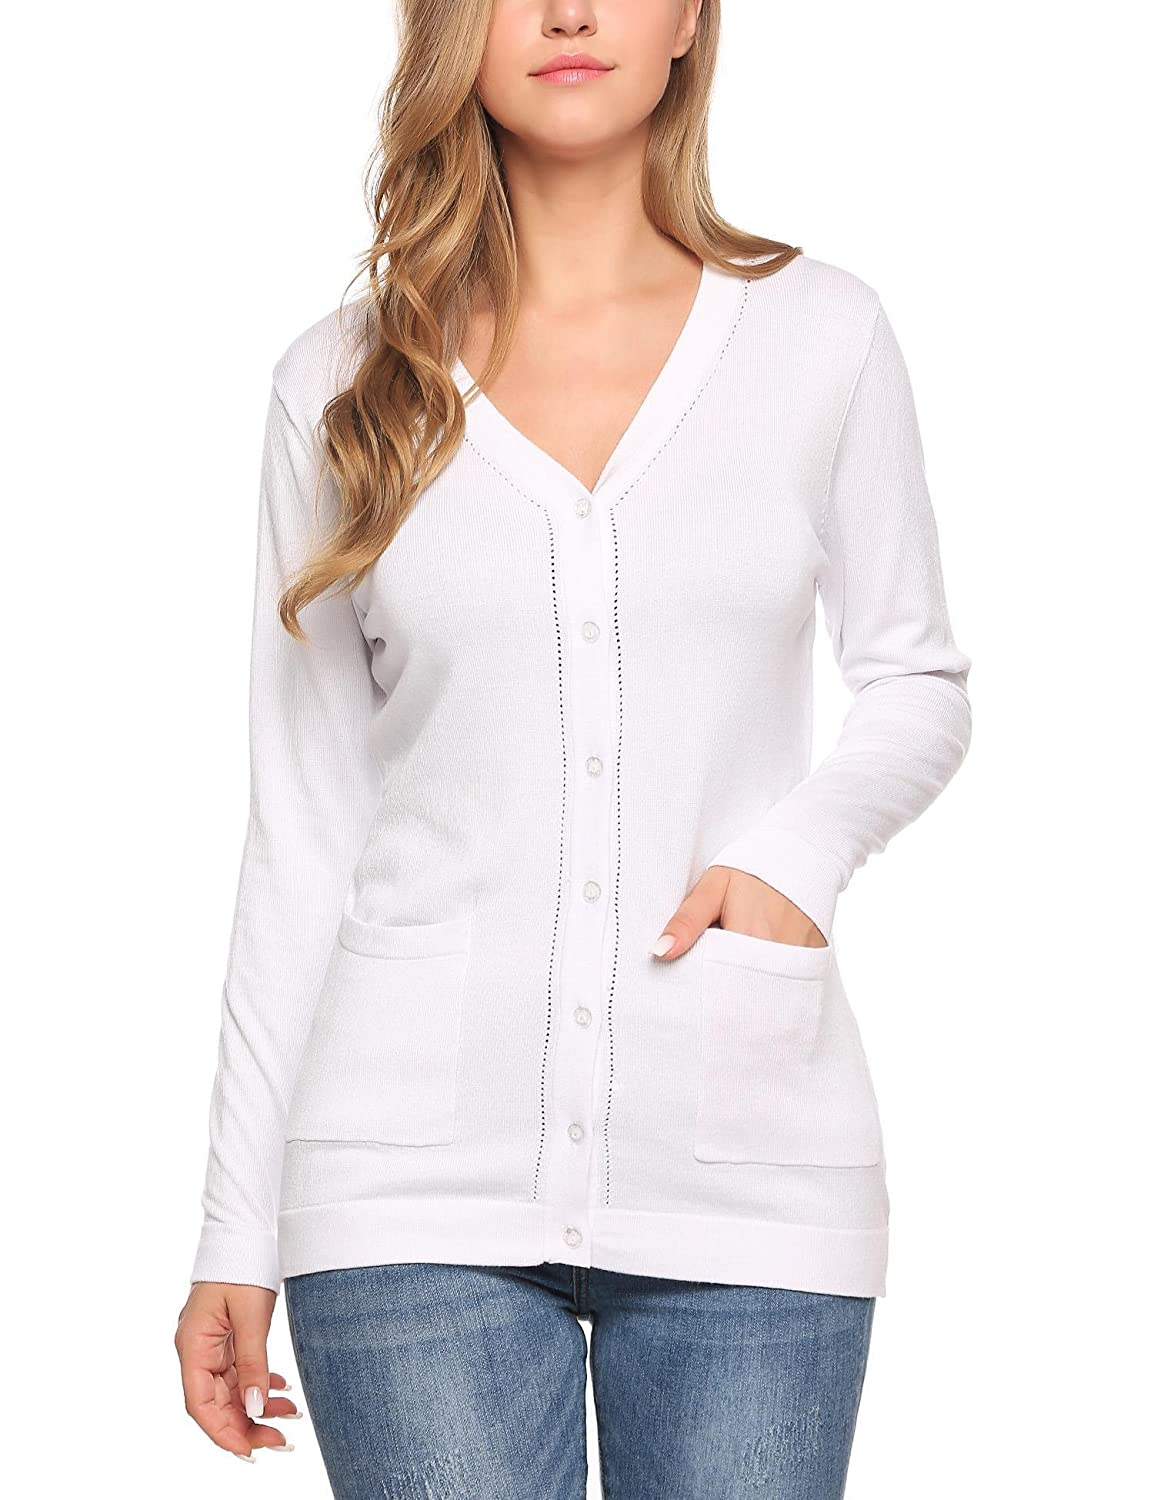 e96a86211c Meaneor Womens V Neck Button Down Long Sleeve Basic Soft Knit Cardigan  Sweater  MAH007454